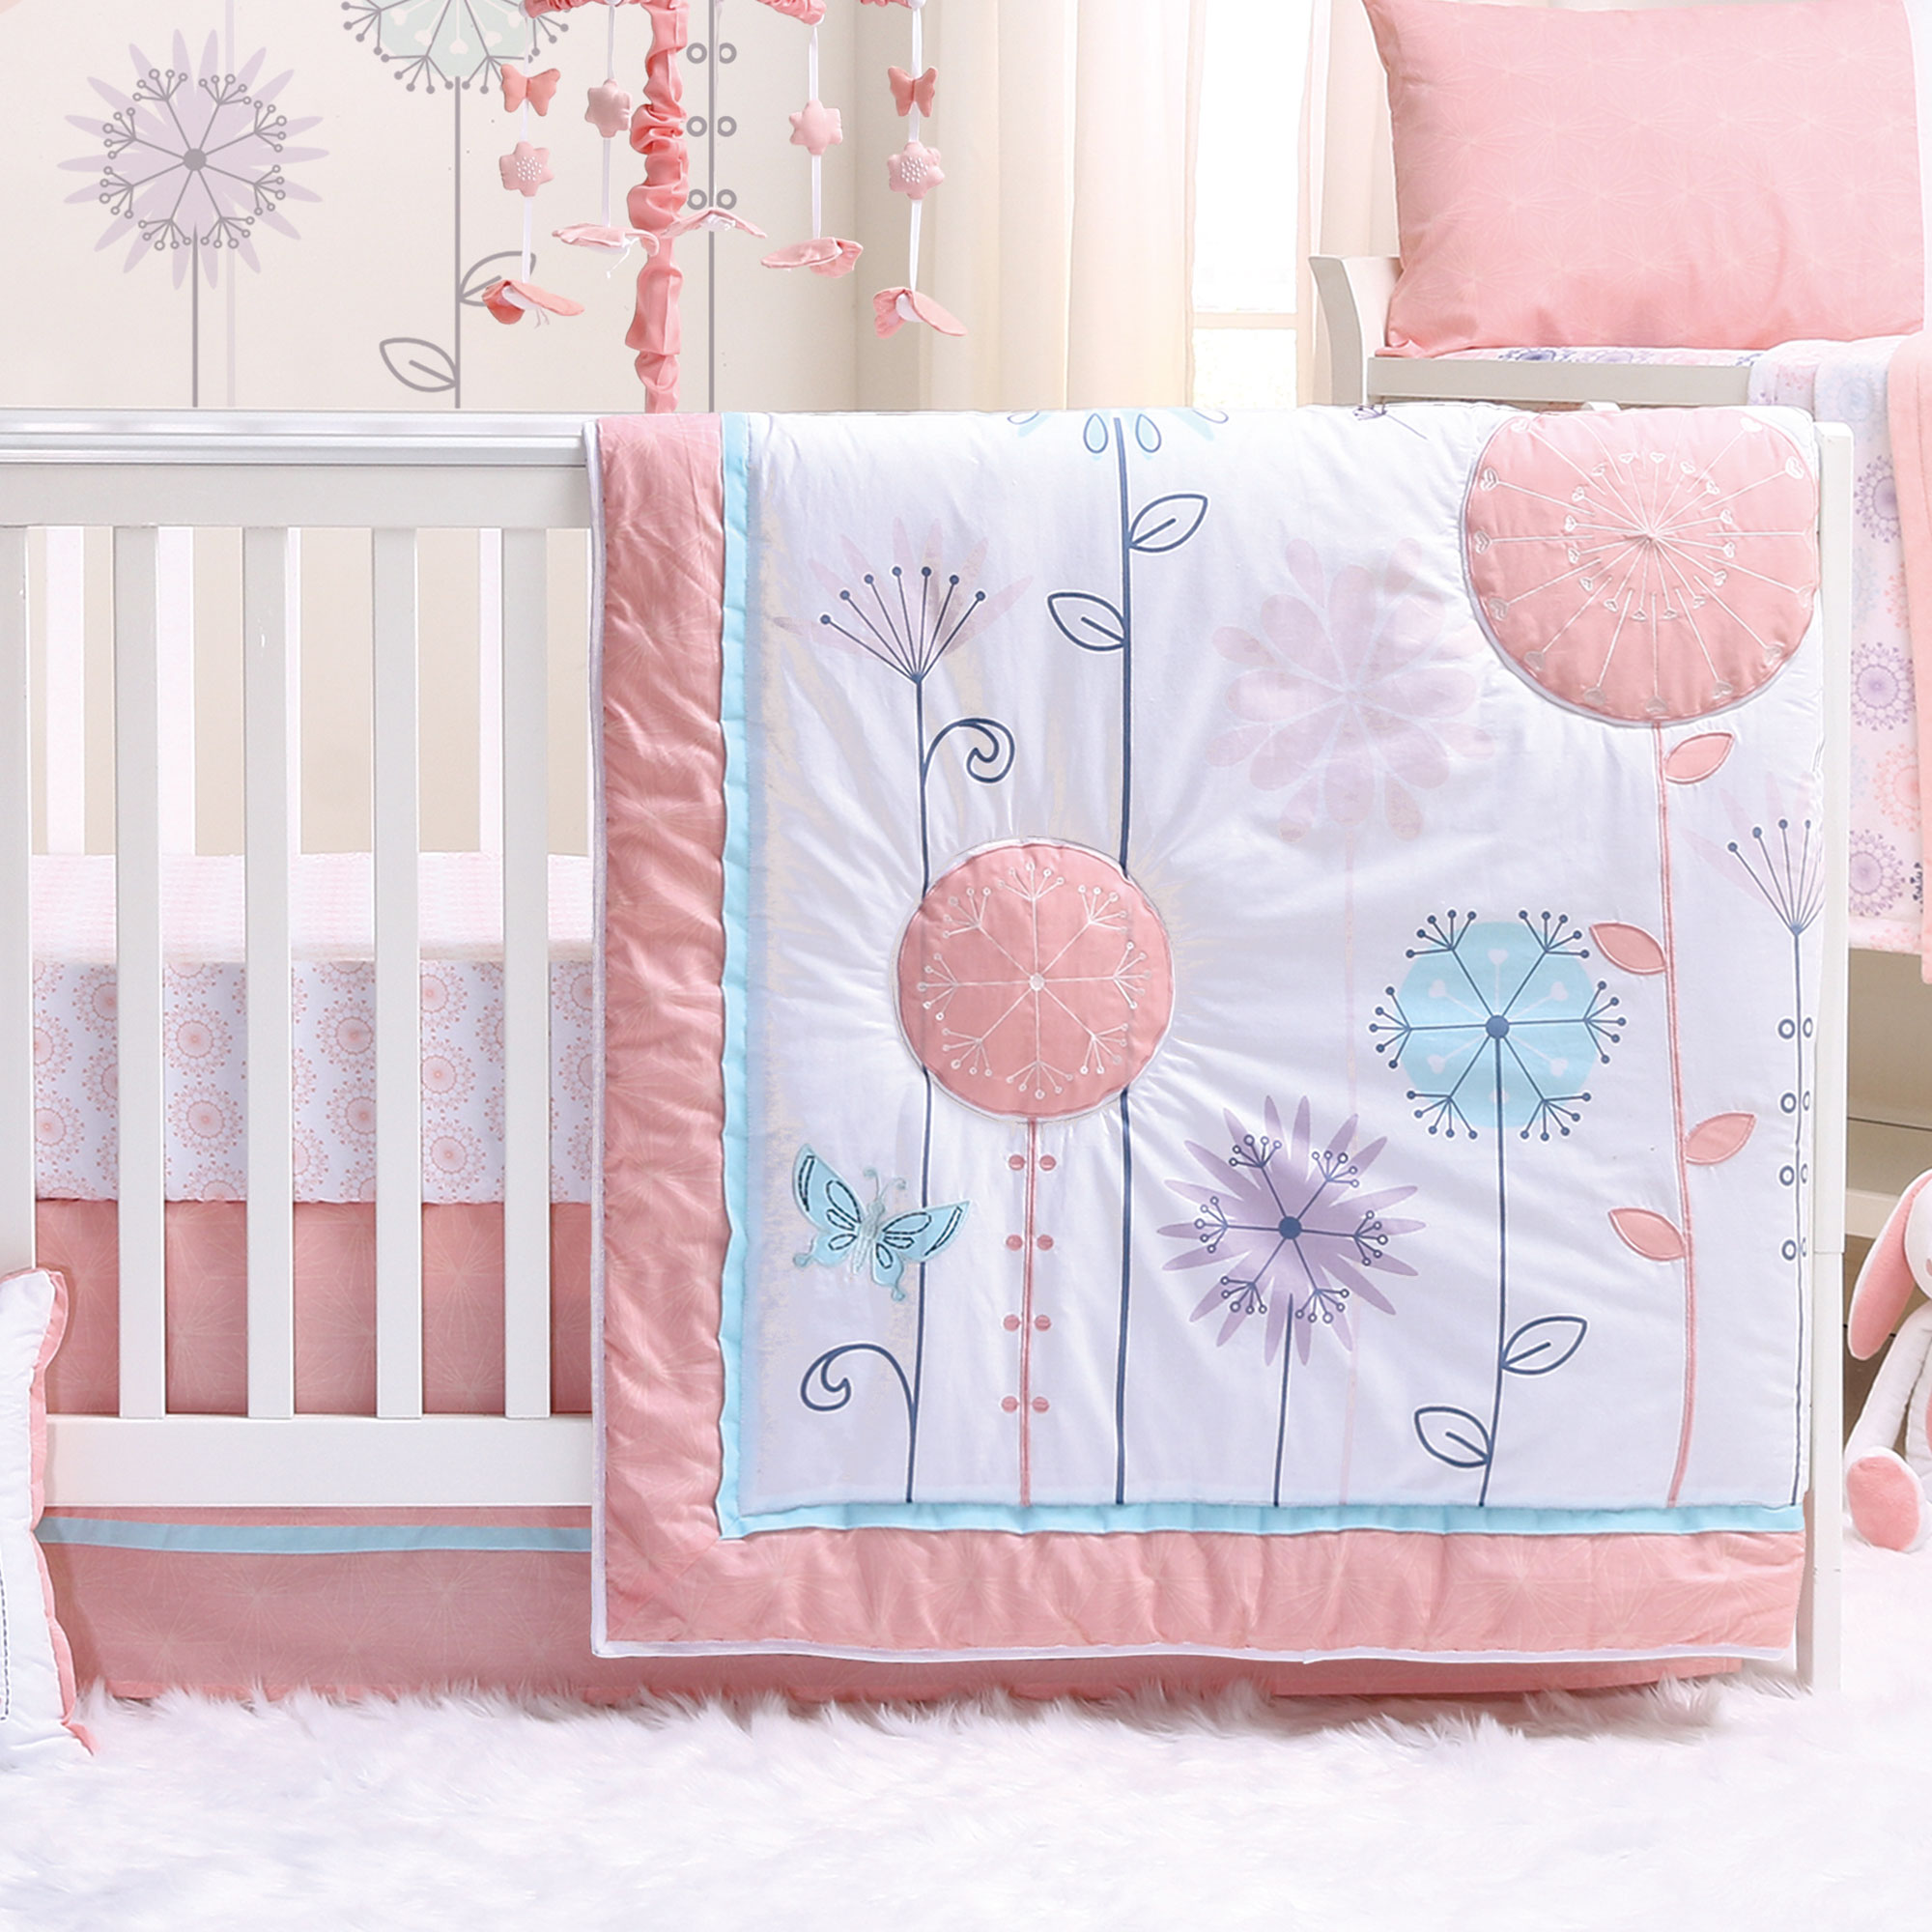 Wildflower 3 Piece Baby Crib Bedding Set Coral, Purple Floral, Butterfly by Farallon Brands